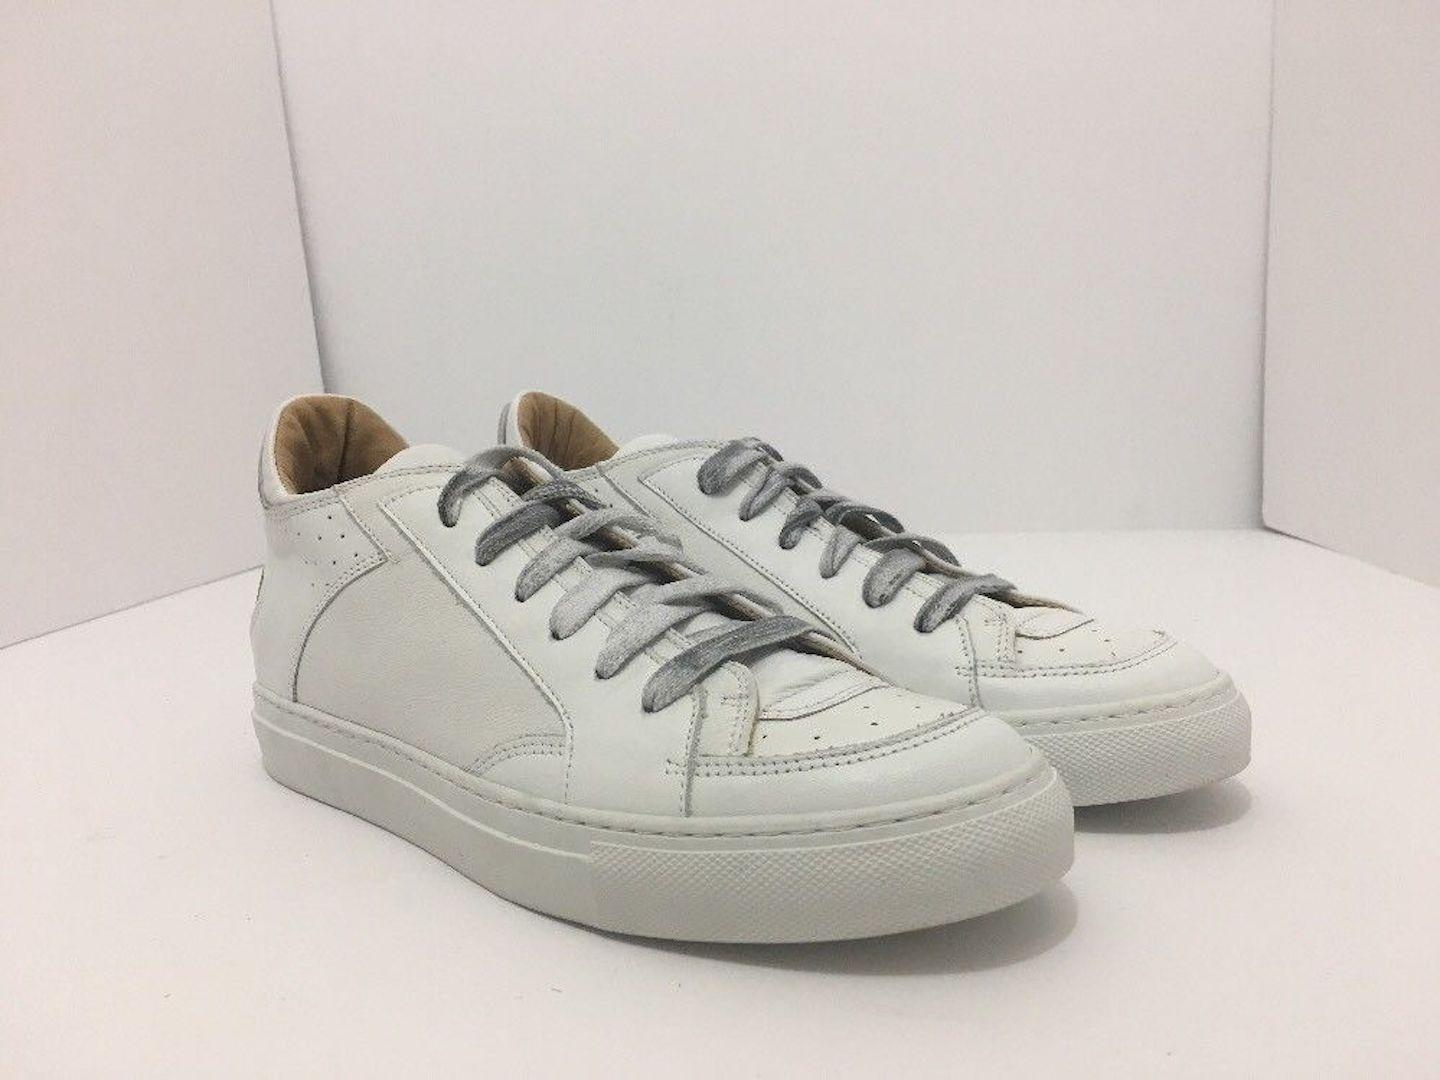 Discount Classic Pay With Visa lace-up sneakers - White Maison Martin Margiela Low Shipping Fee YhxGYBY8